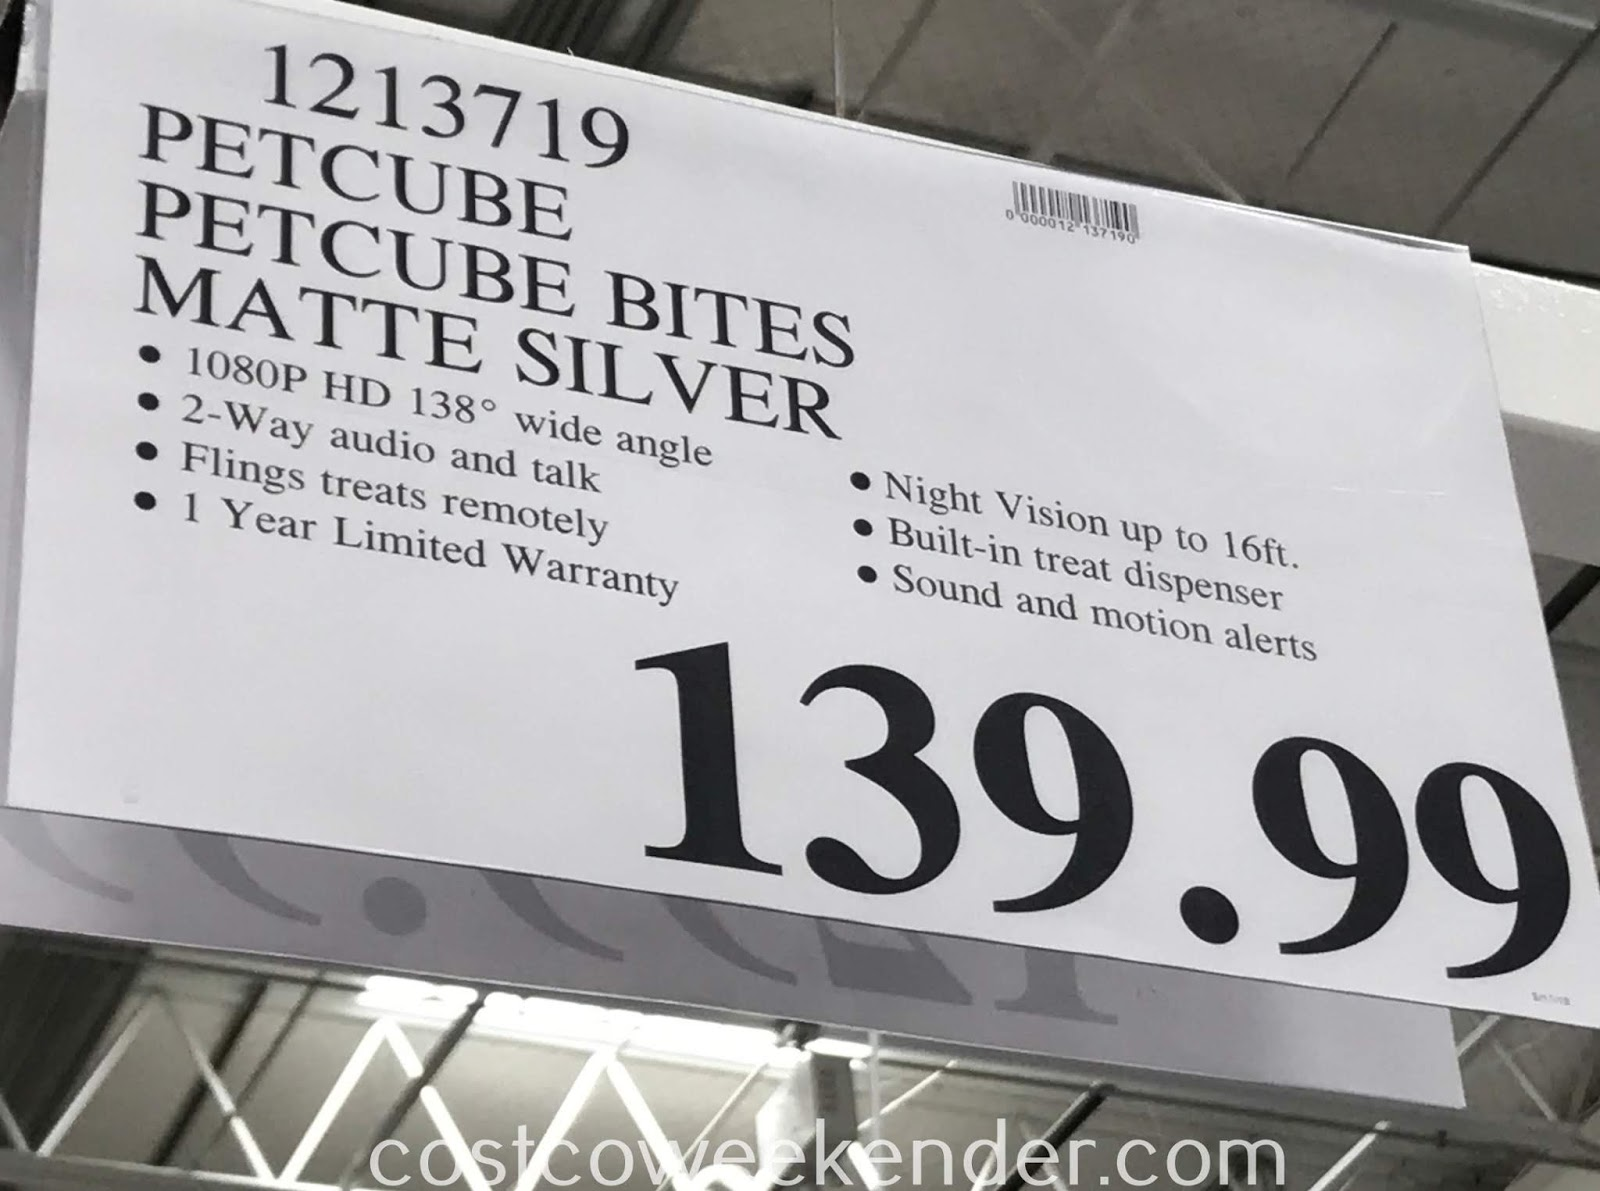 Deal for  Petcube Bites at Costco